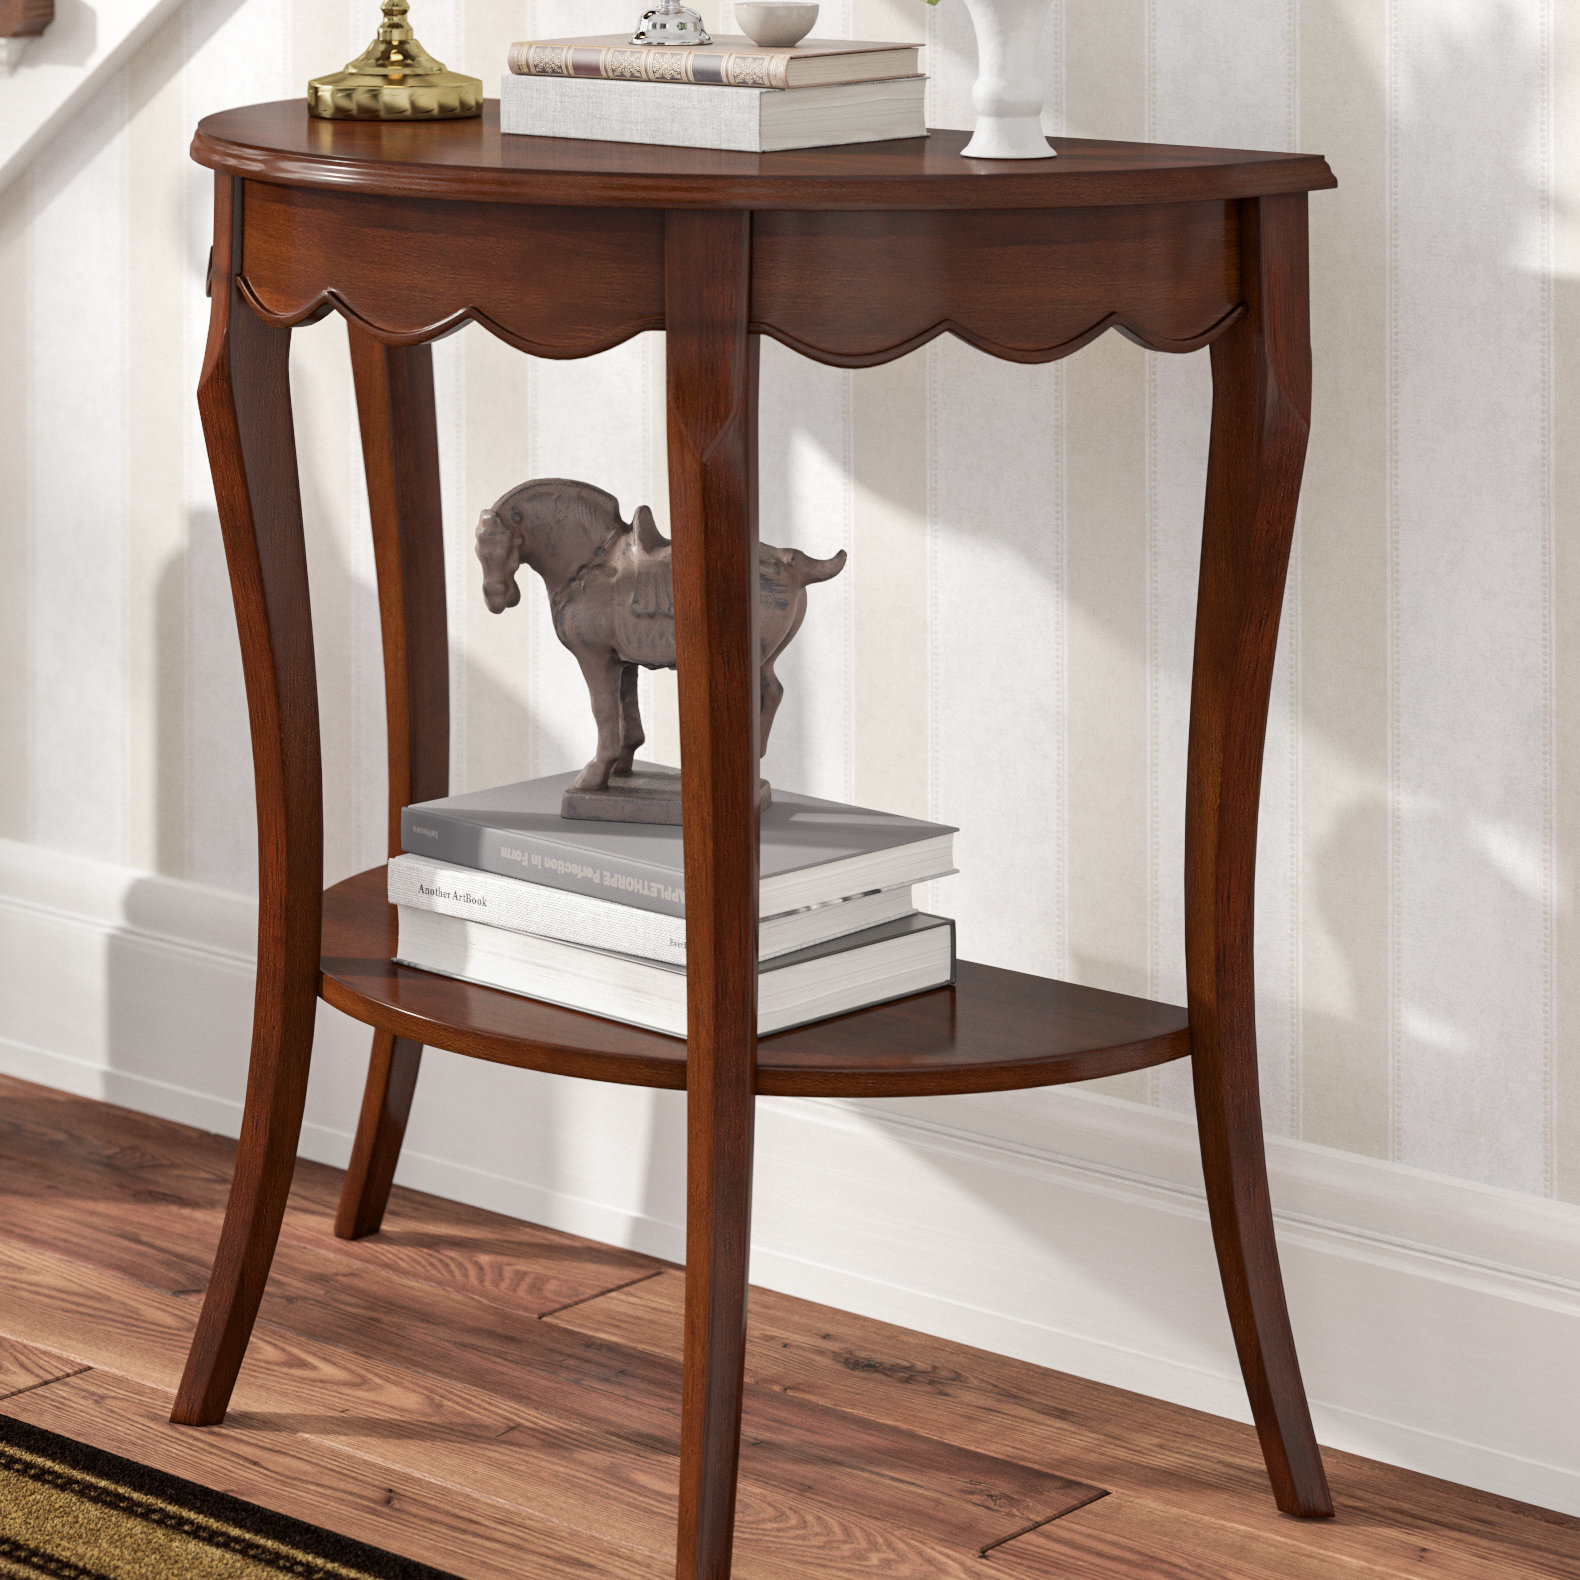 half moon accent table asheville wood console small inch wide dining black metal meyda tiffany lighting media storage end round side dale aldridge lamp white bedside lockers